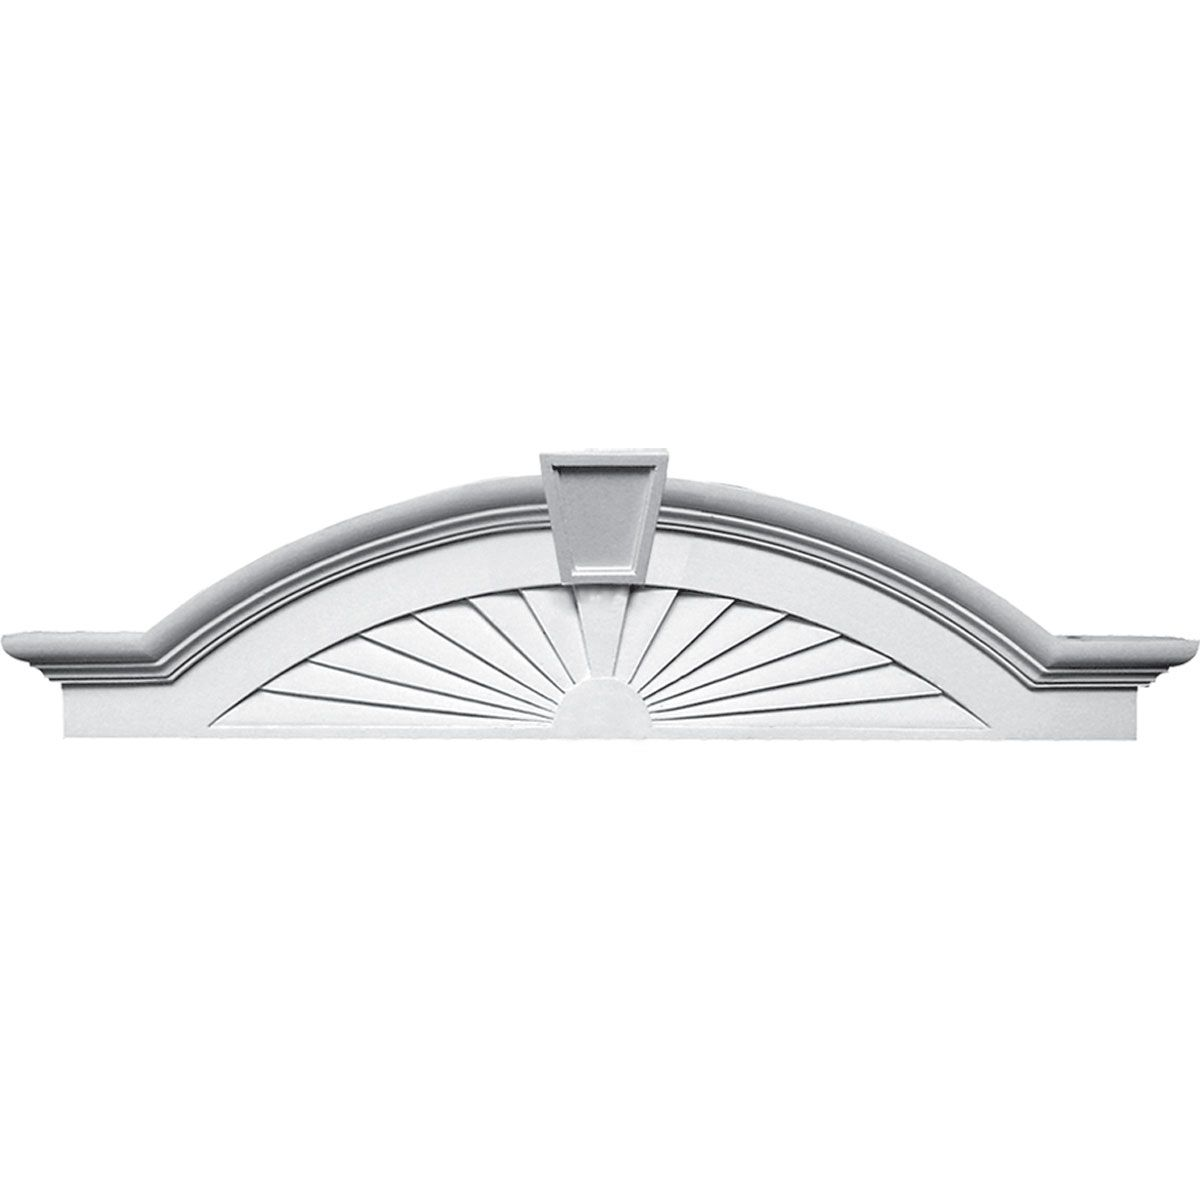 Pd 270375 Elliptical Sunburst With Trim Pediment